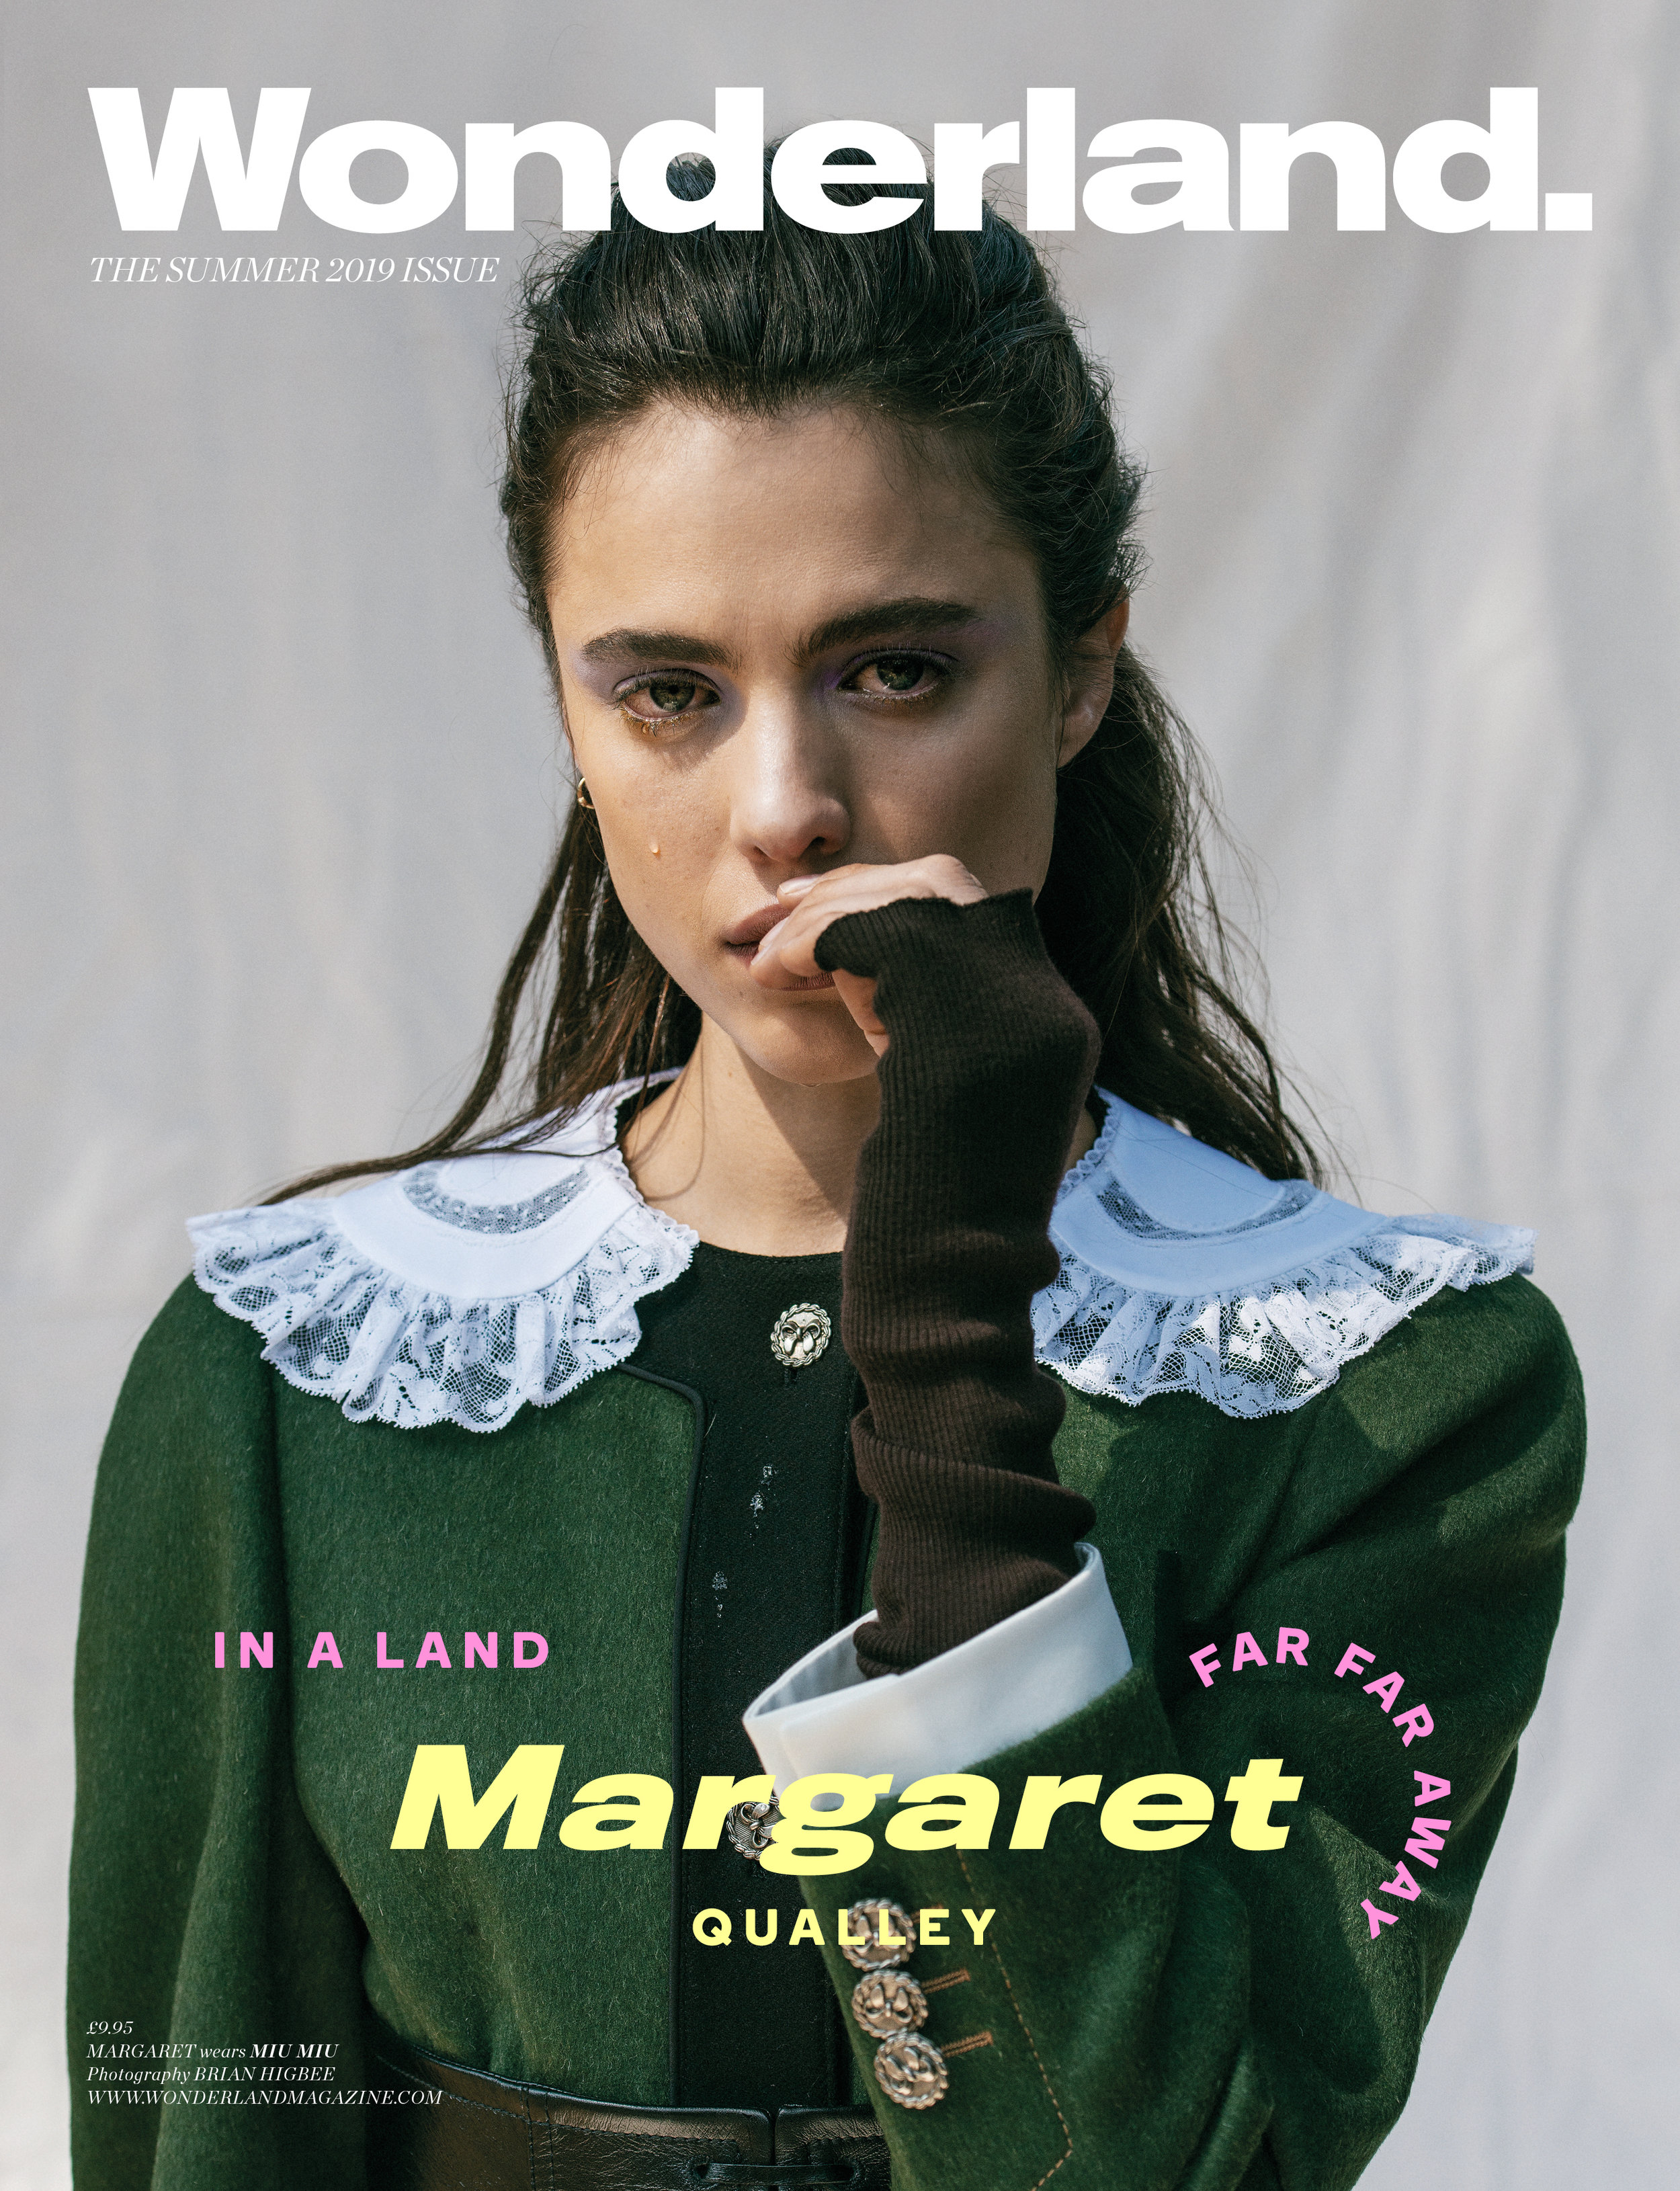 margaret_qualley_01.jpg